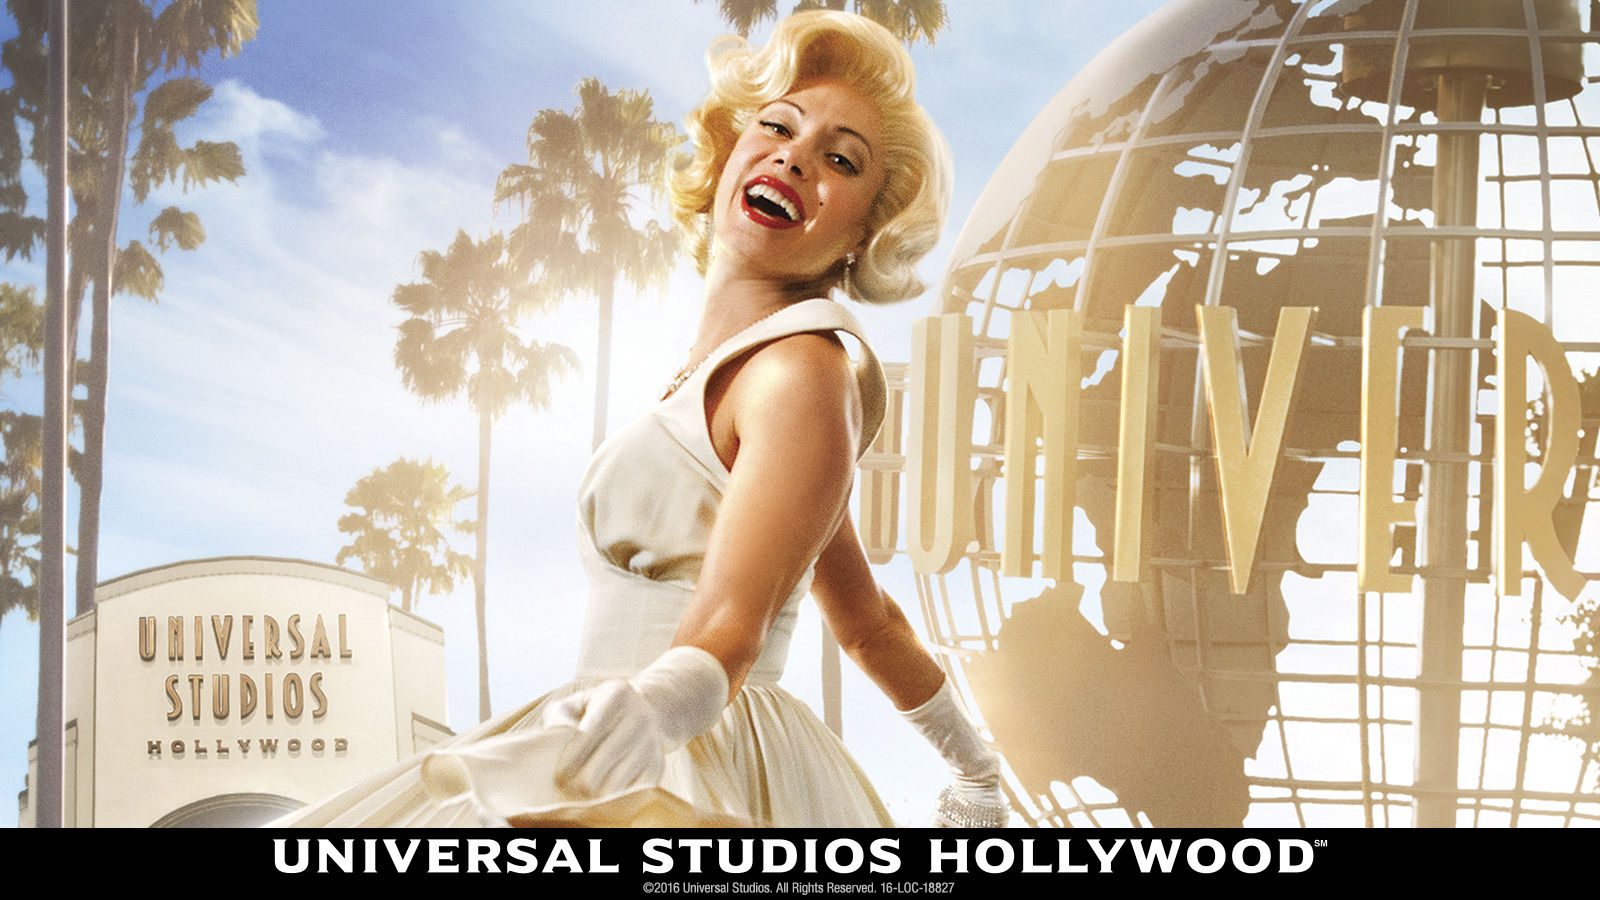 Universal Studios Hollywood Hotels - Marilyn Monroe